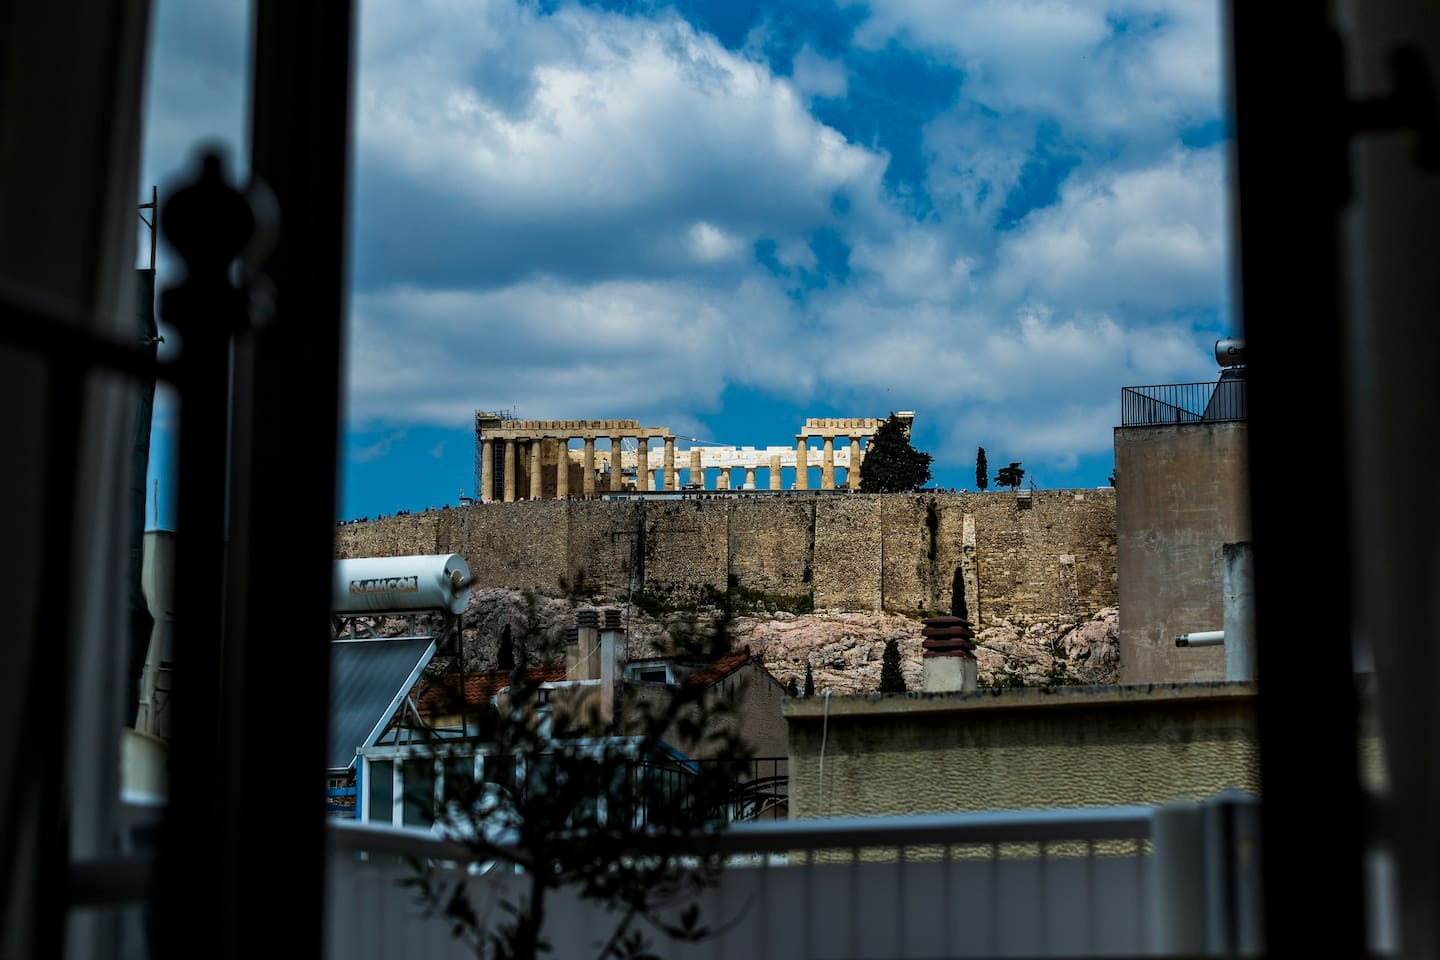 The Unique Acropolis view from the Bedroom